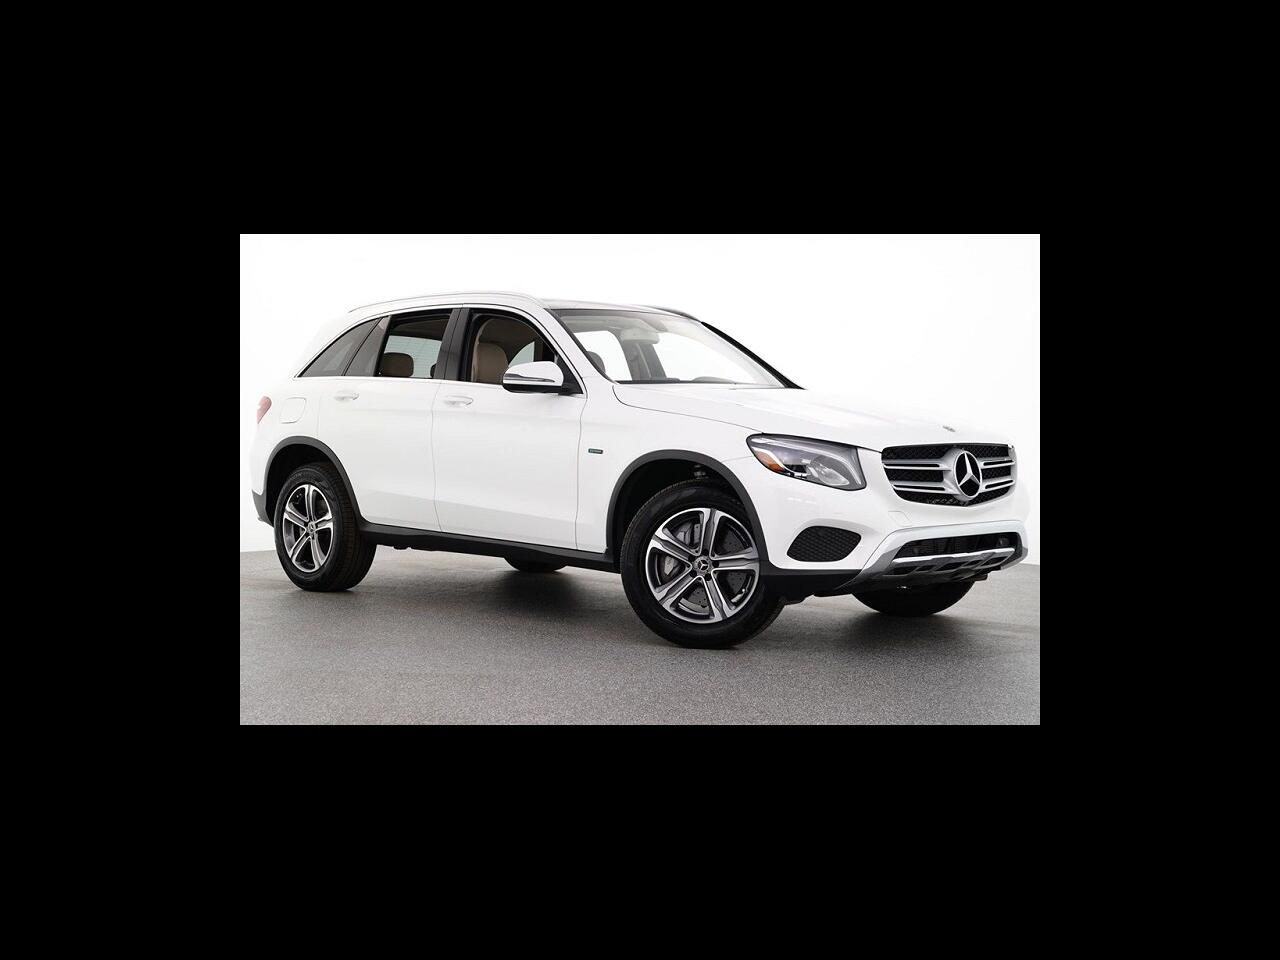 Mercedes-Benz GLC GLC 350e 4MATIC SUV 2019